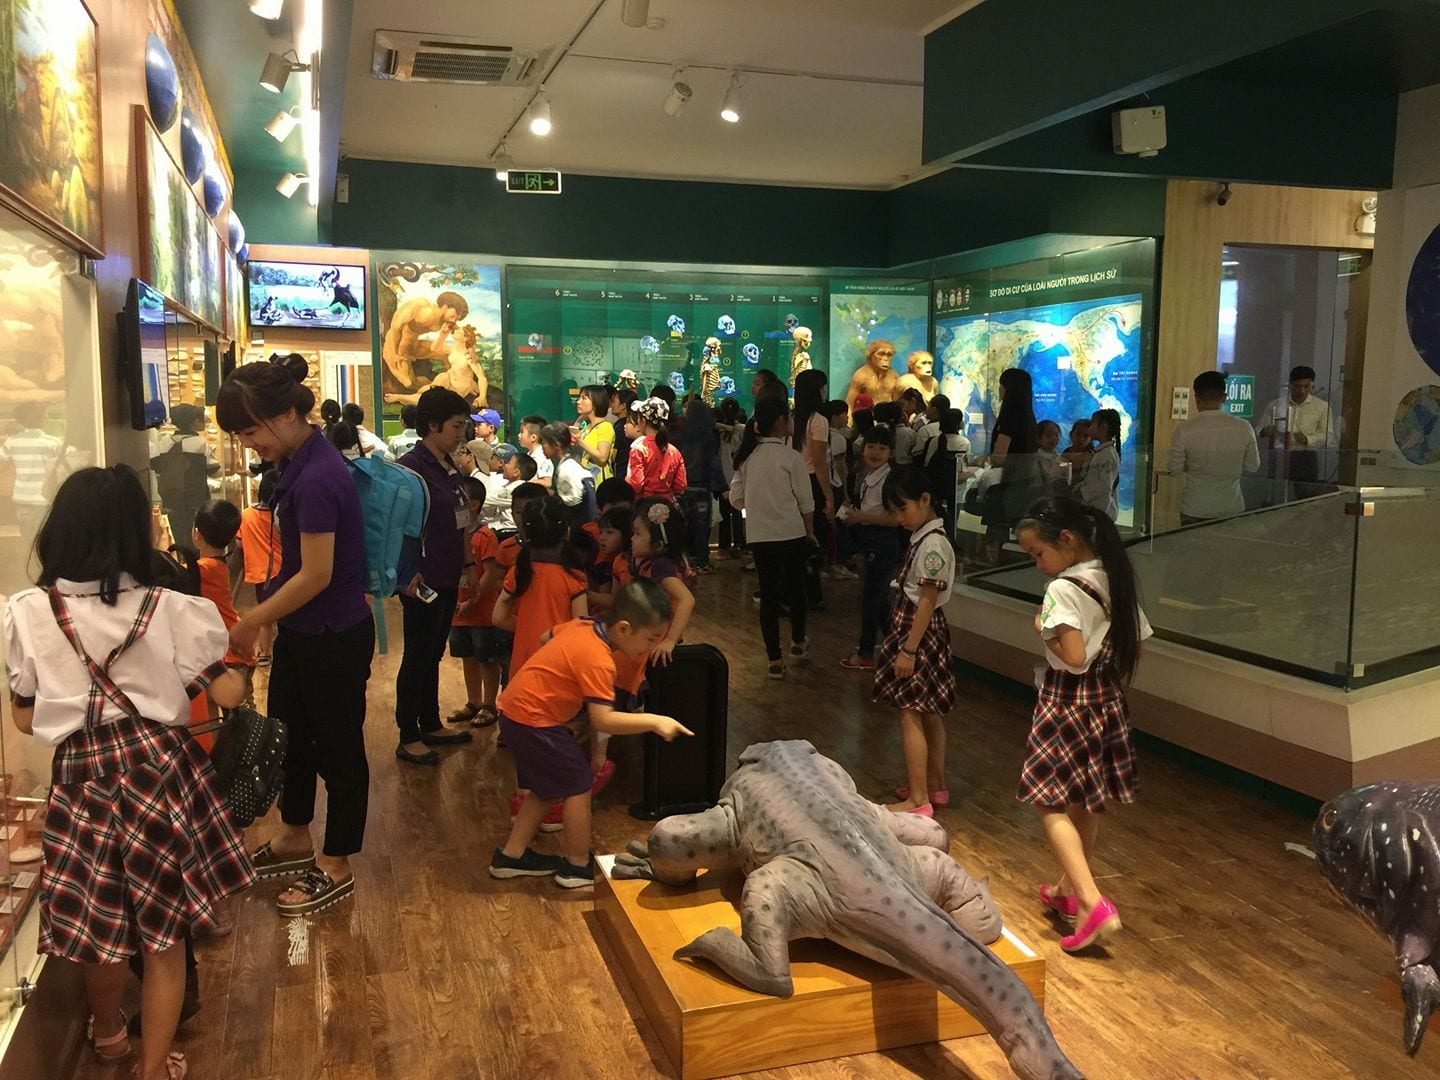 Image of kids inside the Vietnam History Museum in Ha Noi